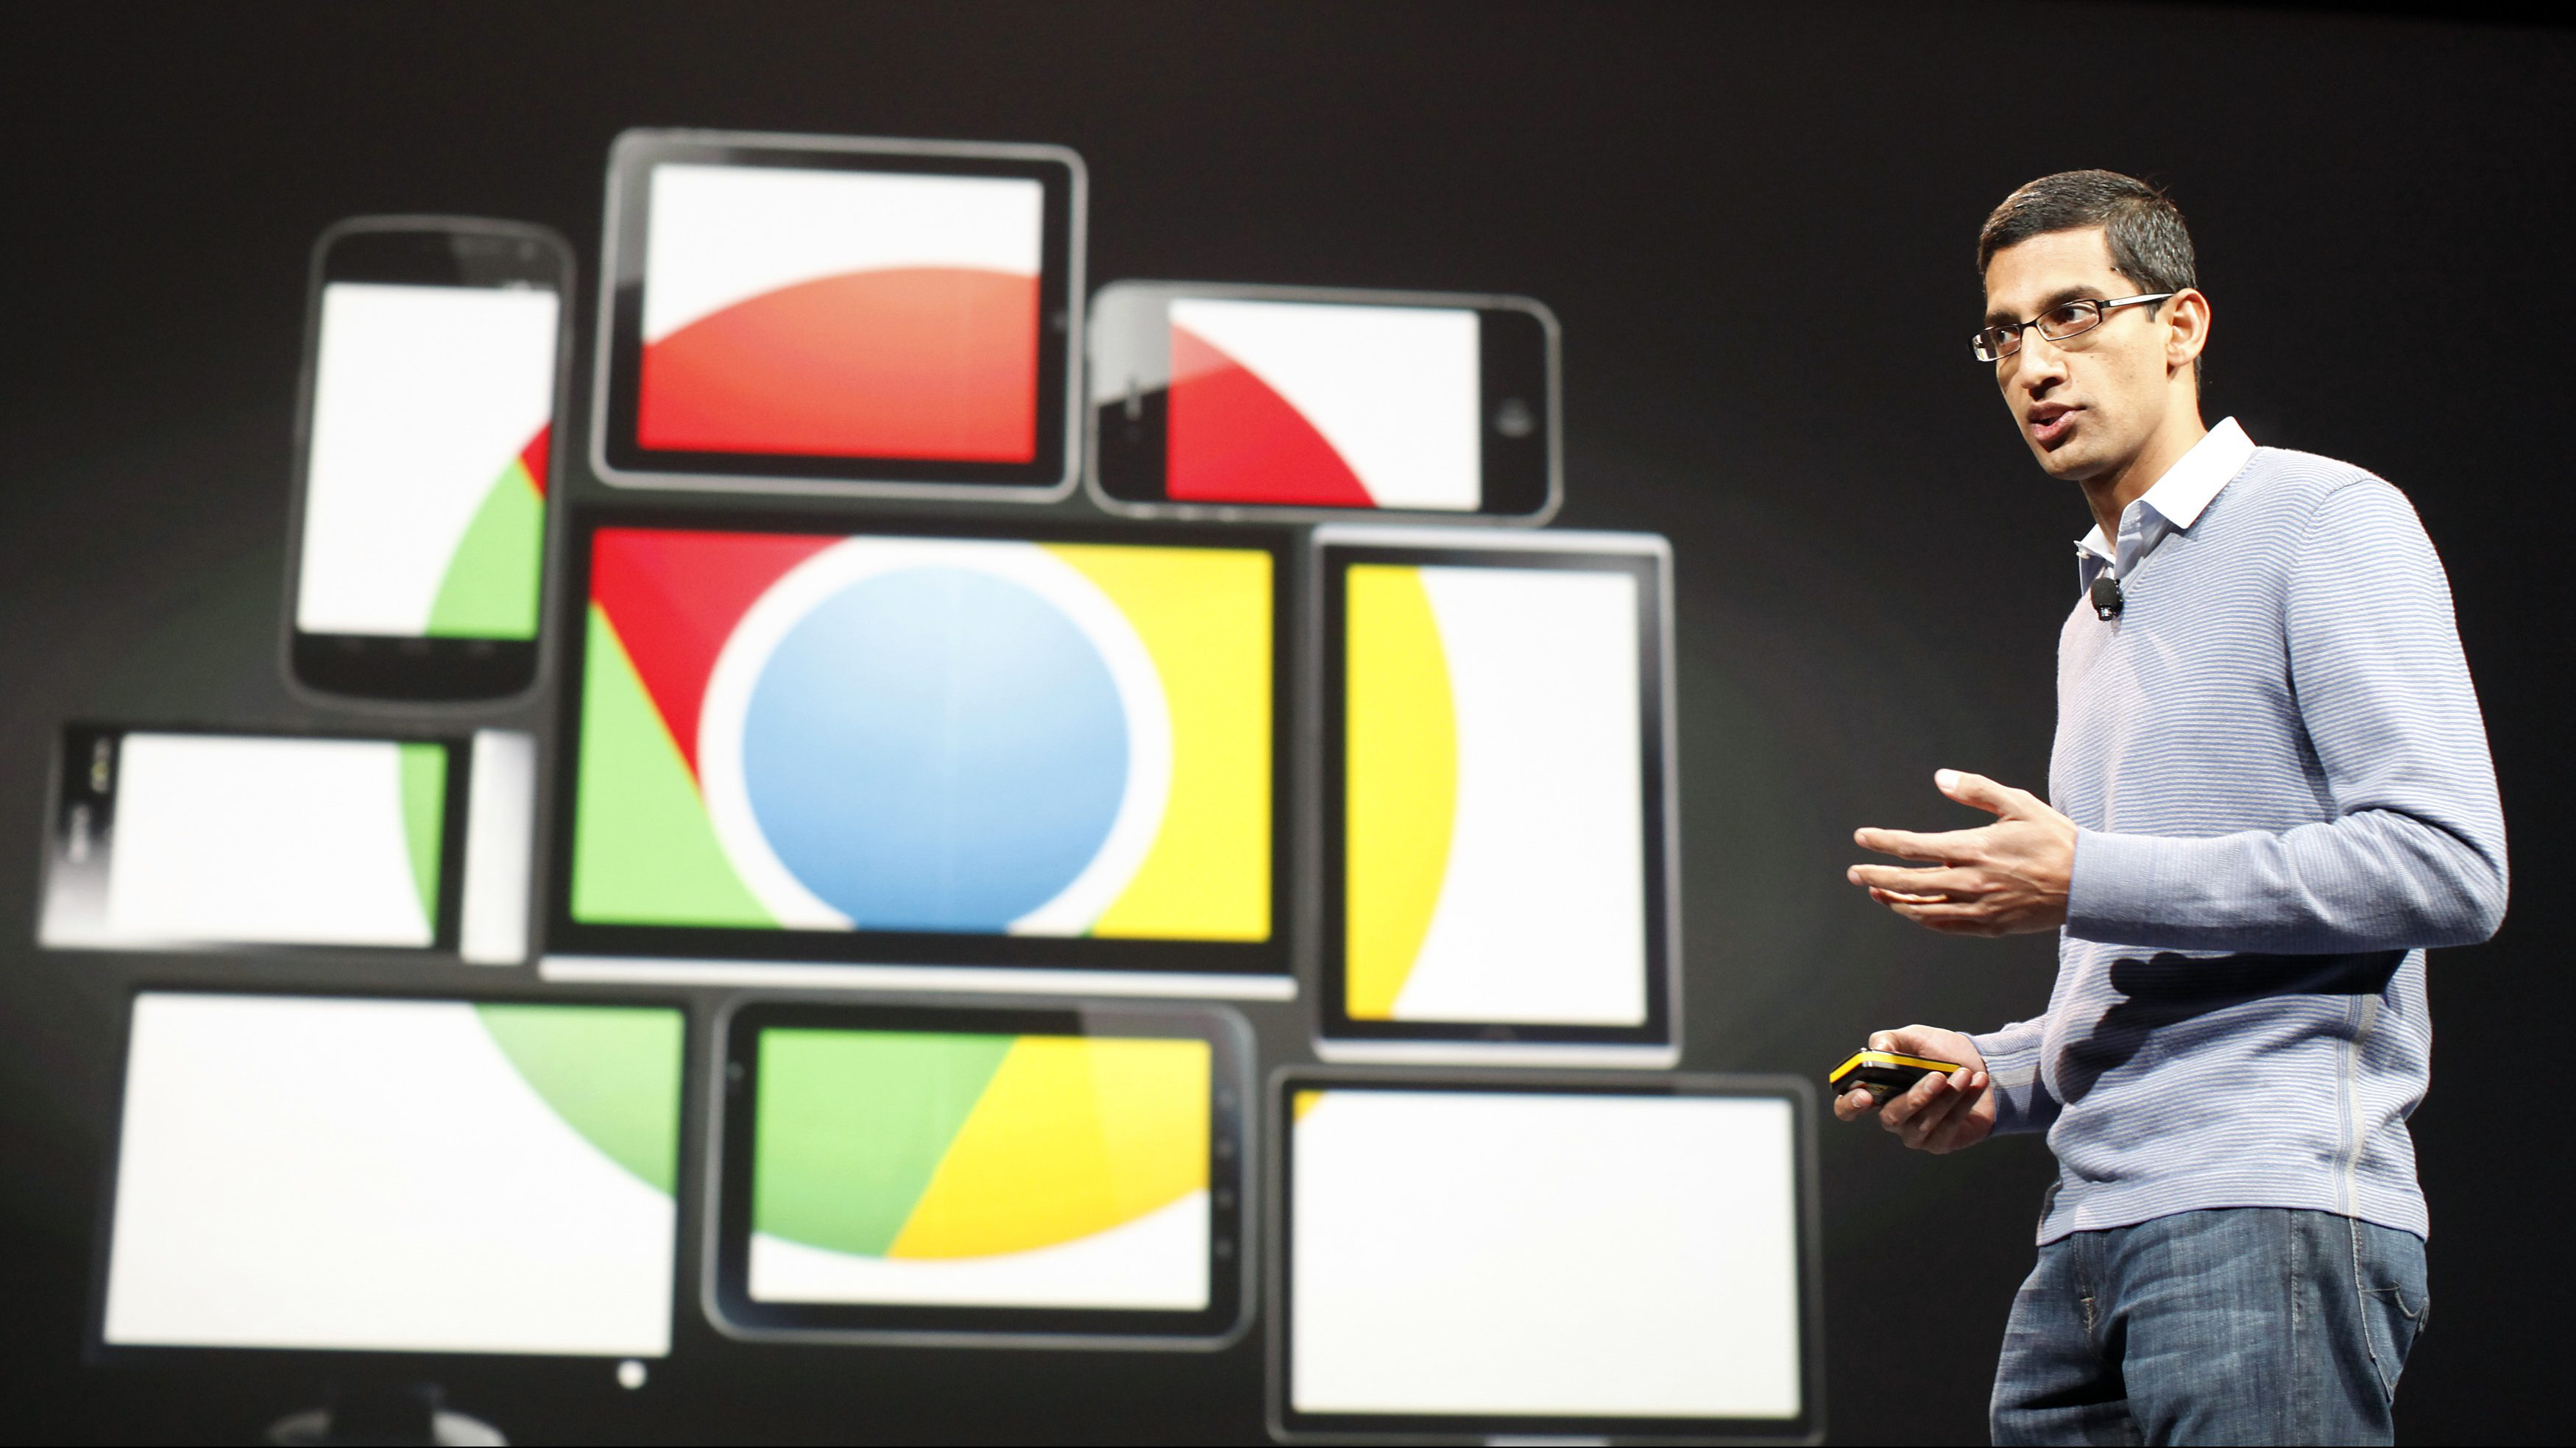 Sundar Pichai stands in front of a group of screens displaying the Google Chrome logo.